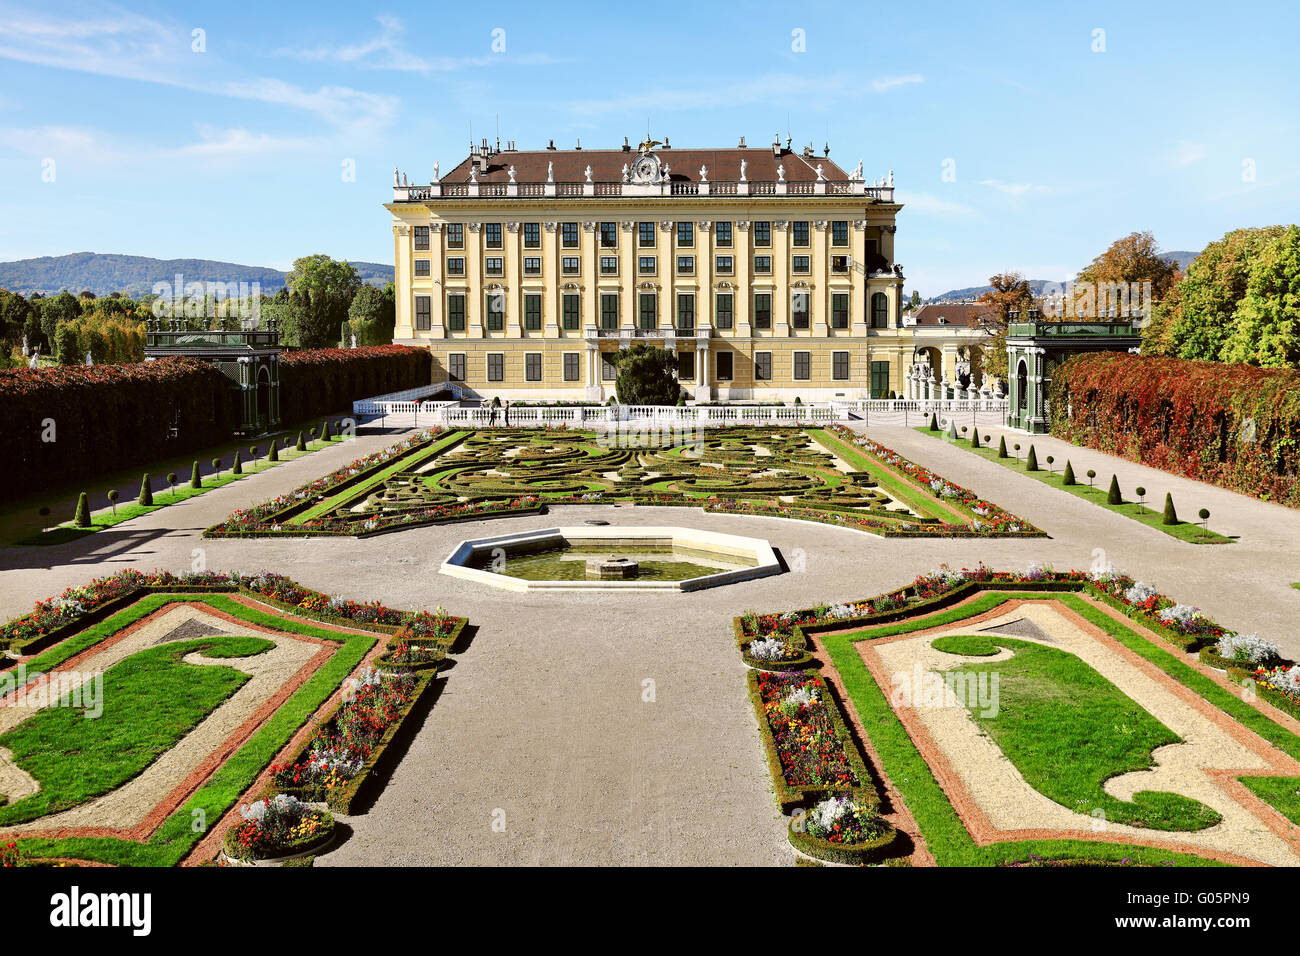 Beautiful Schonbrunn Palace in Vienna, Austria Stock Photo